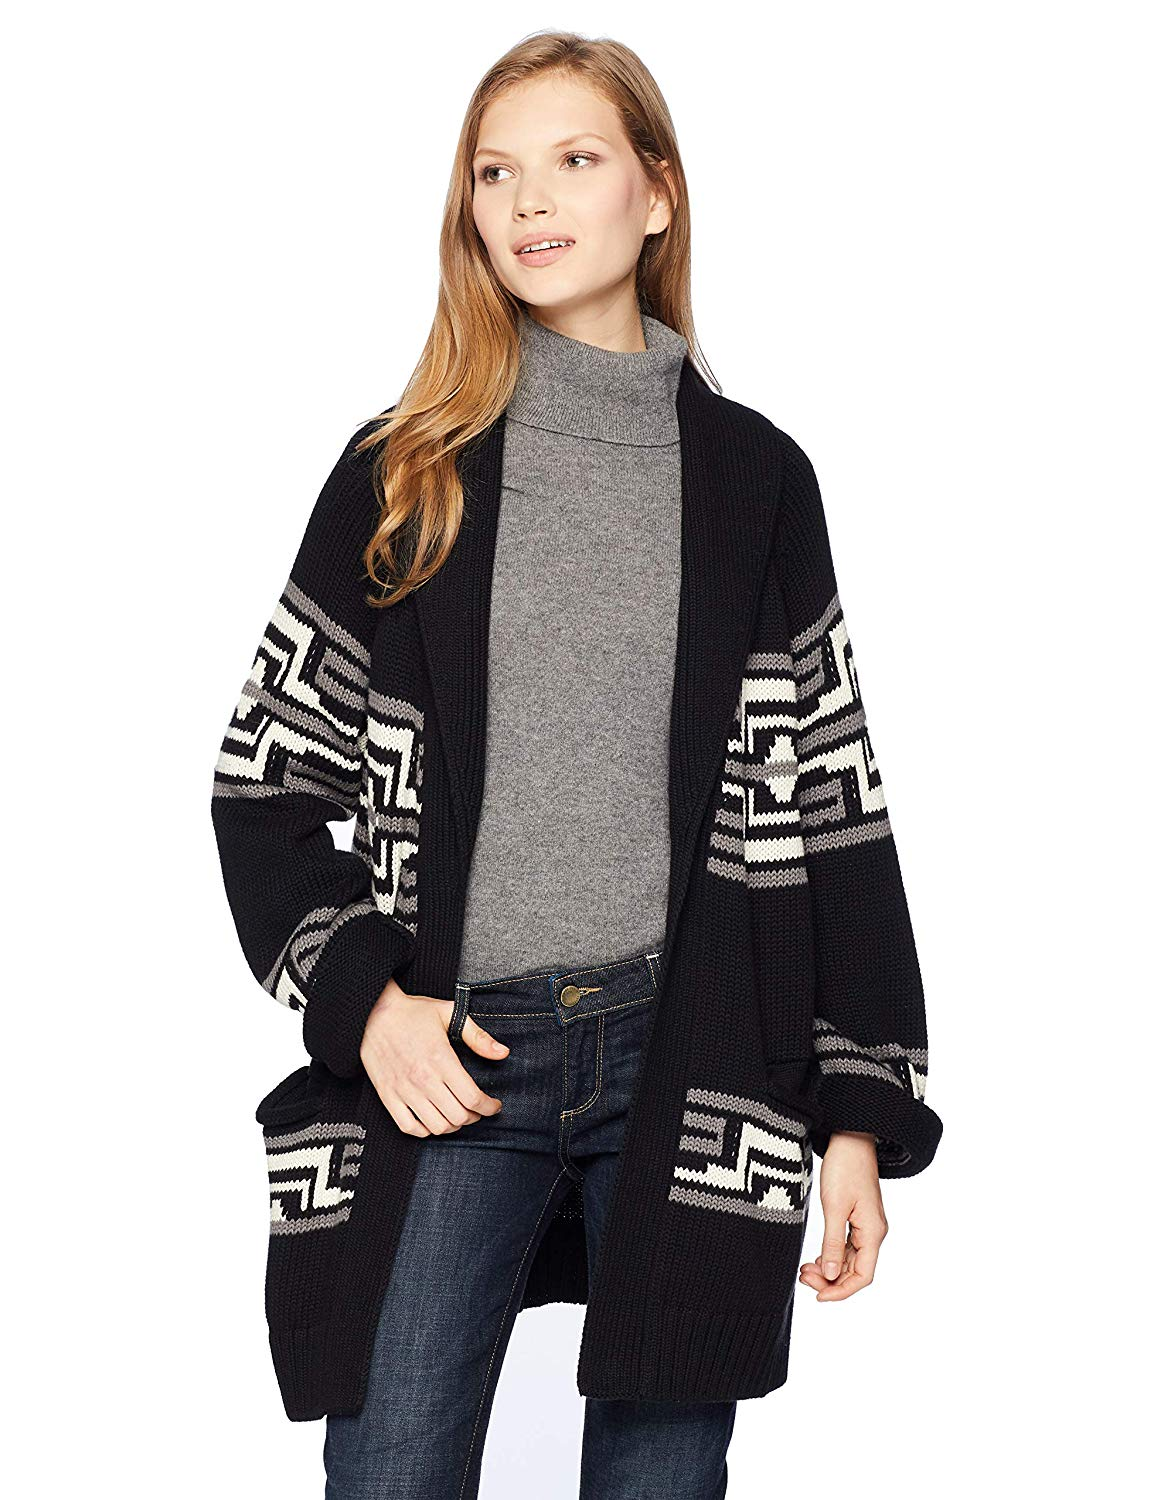 8f1ed831fa5854 Get Quotations · Pendleton Women's Las Cruces Cotton Cardigan Sweater,